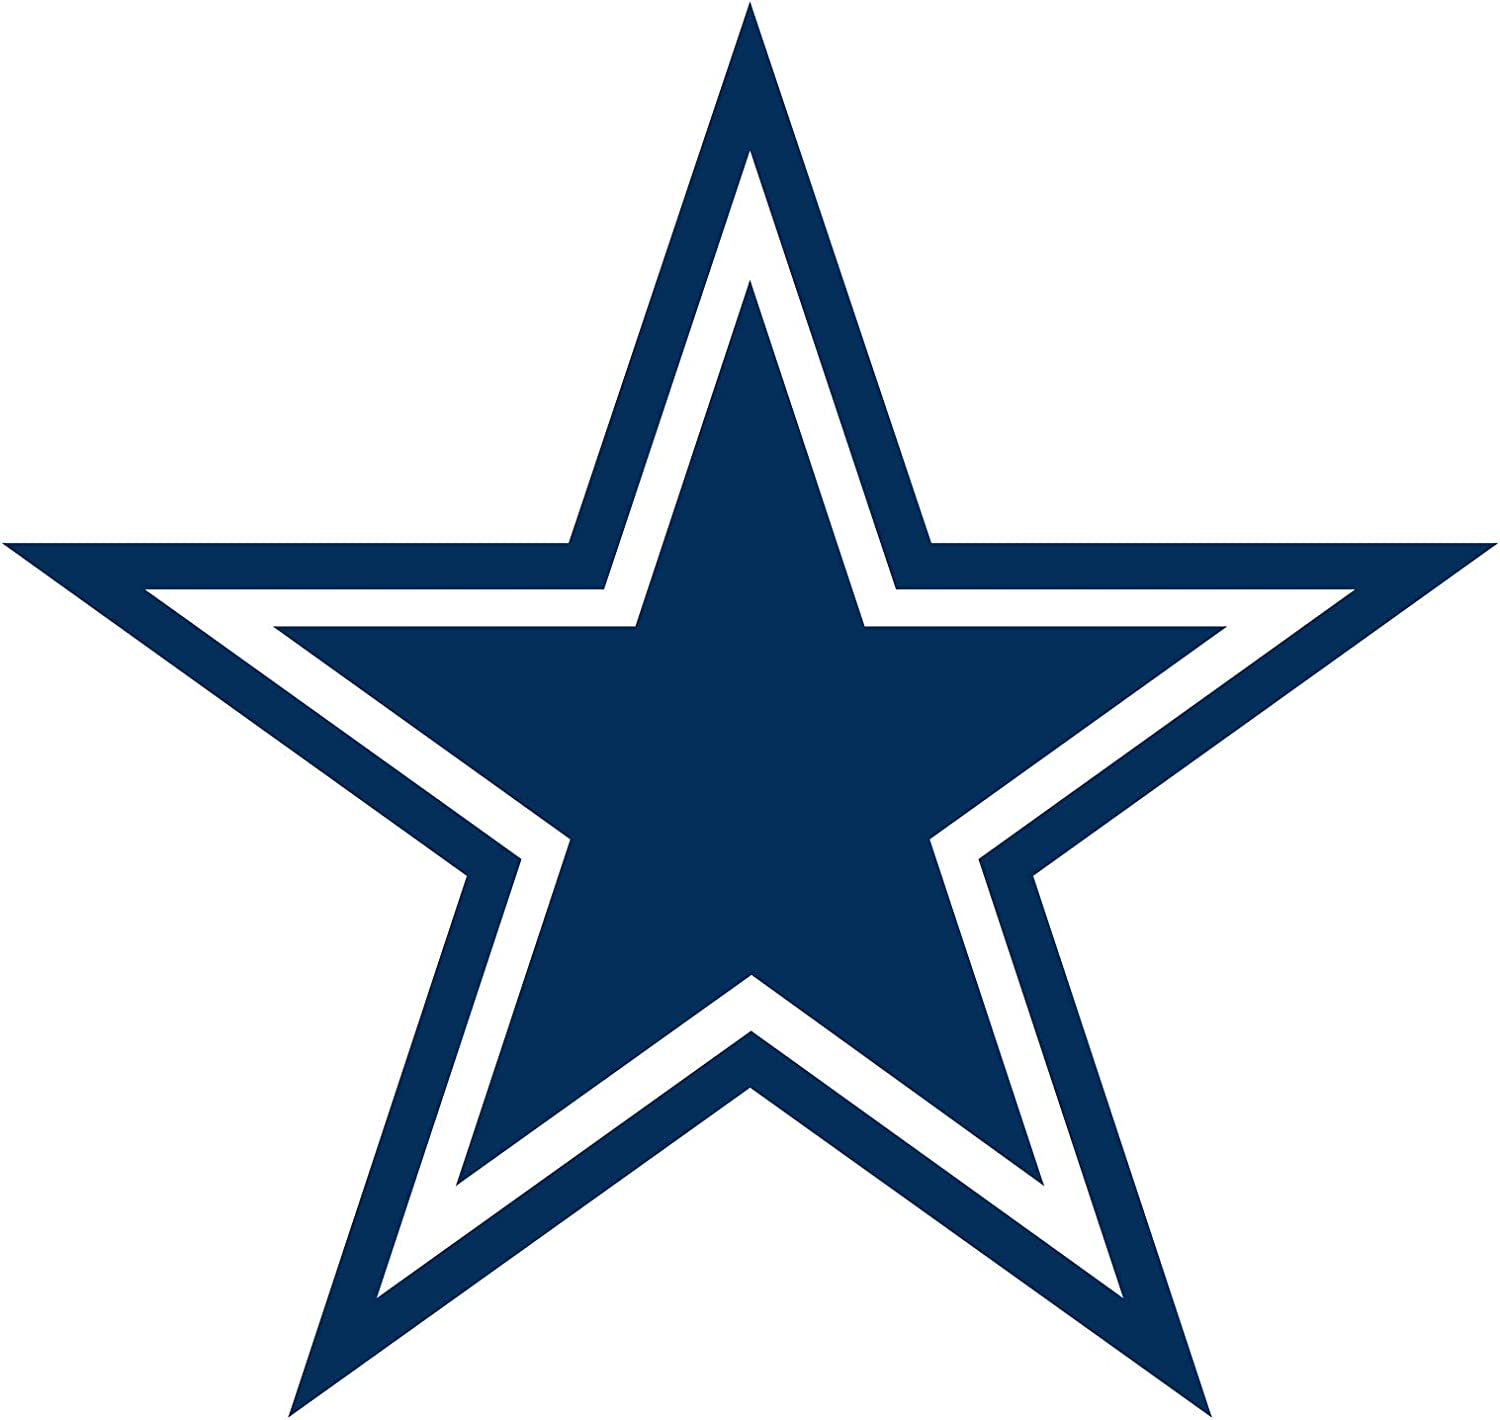 Dallas Cowboys 2021 Logo Minis - Officially Licensed NFL Removable Decals, 12x17